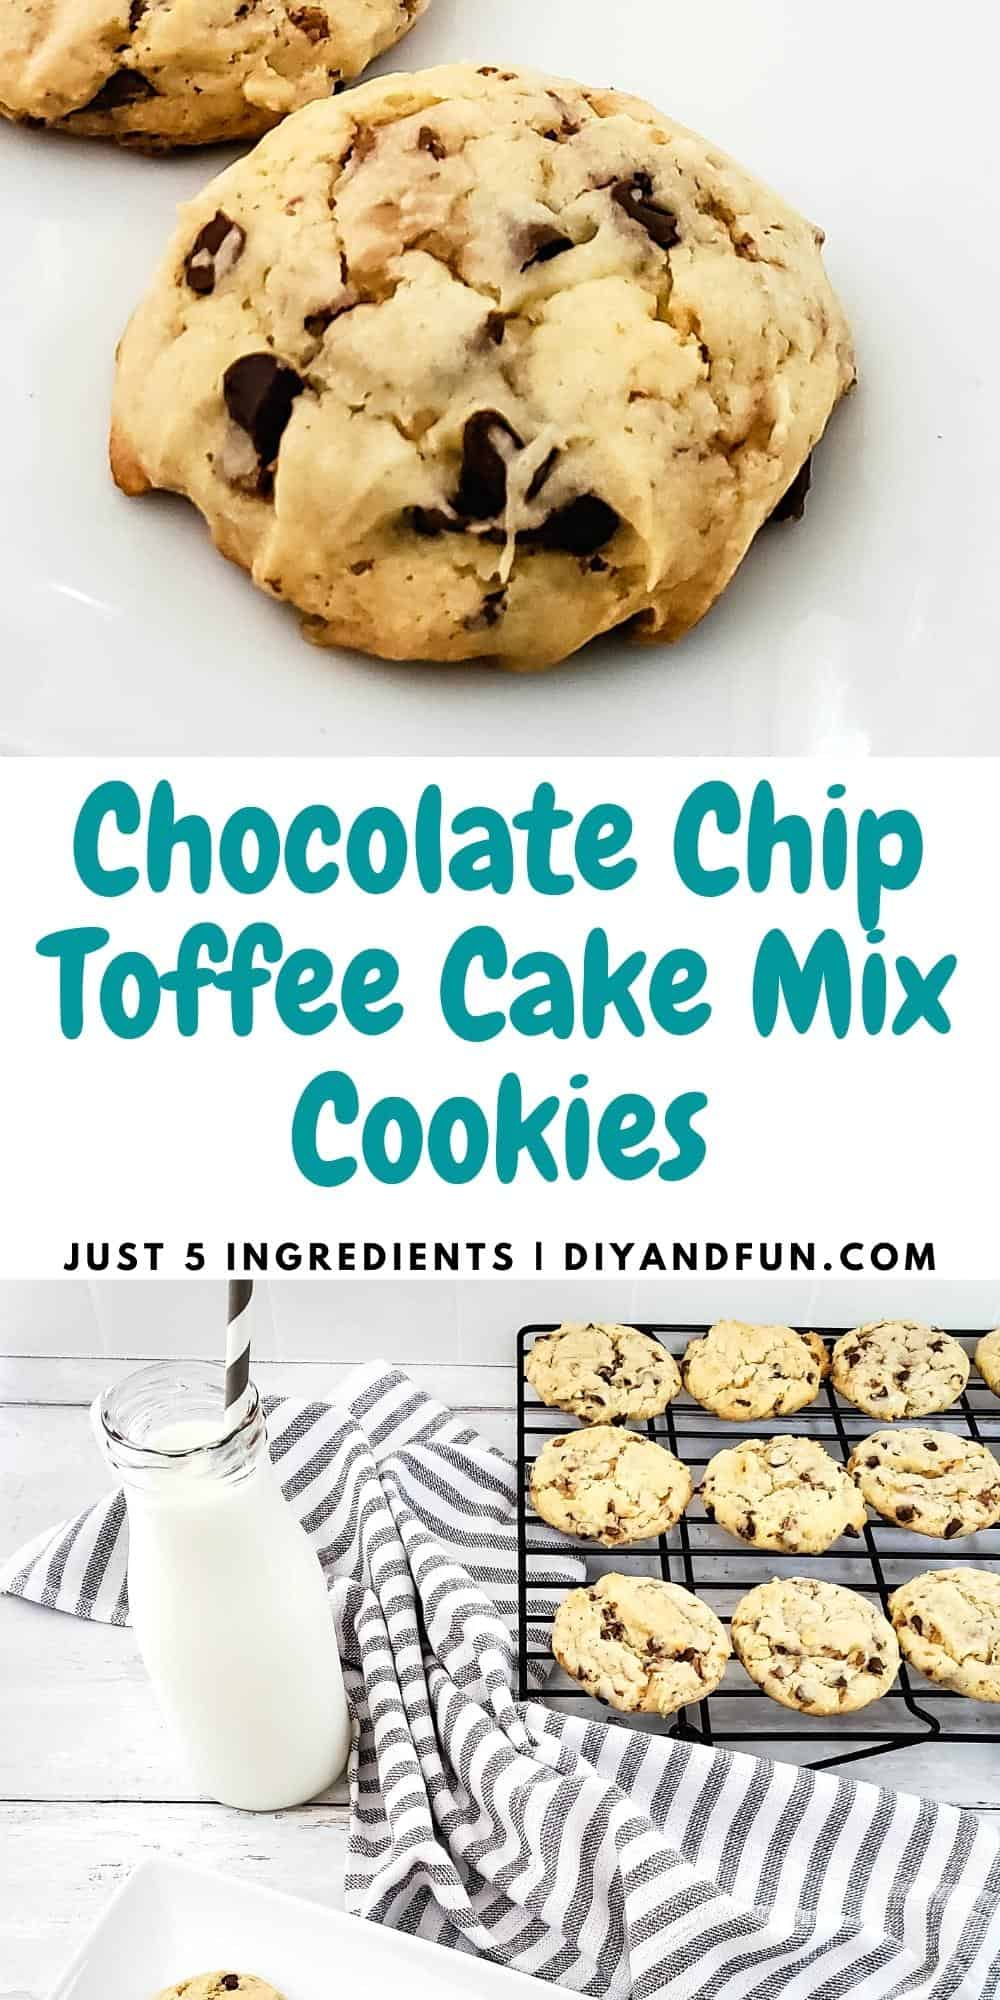 Chocolate Chip Toffee Cake Mix Cookies